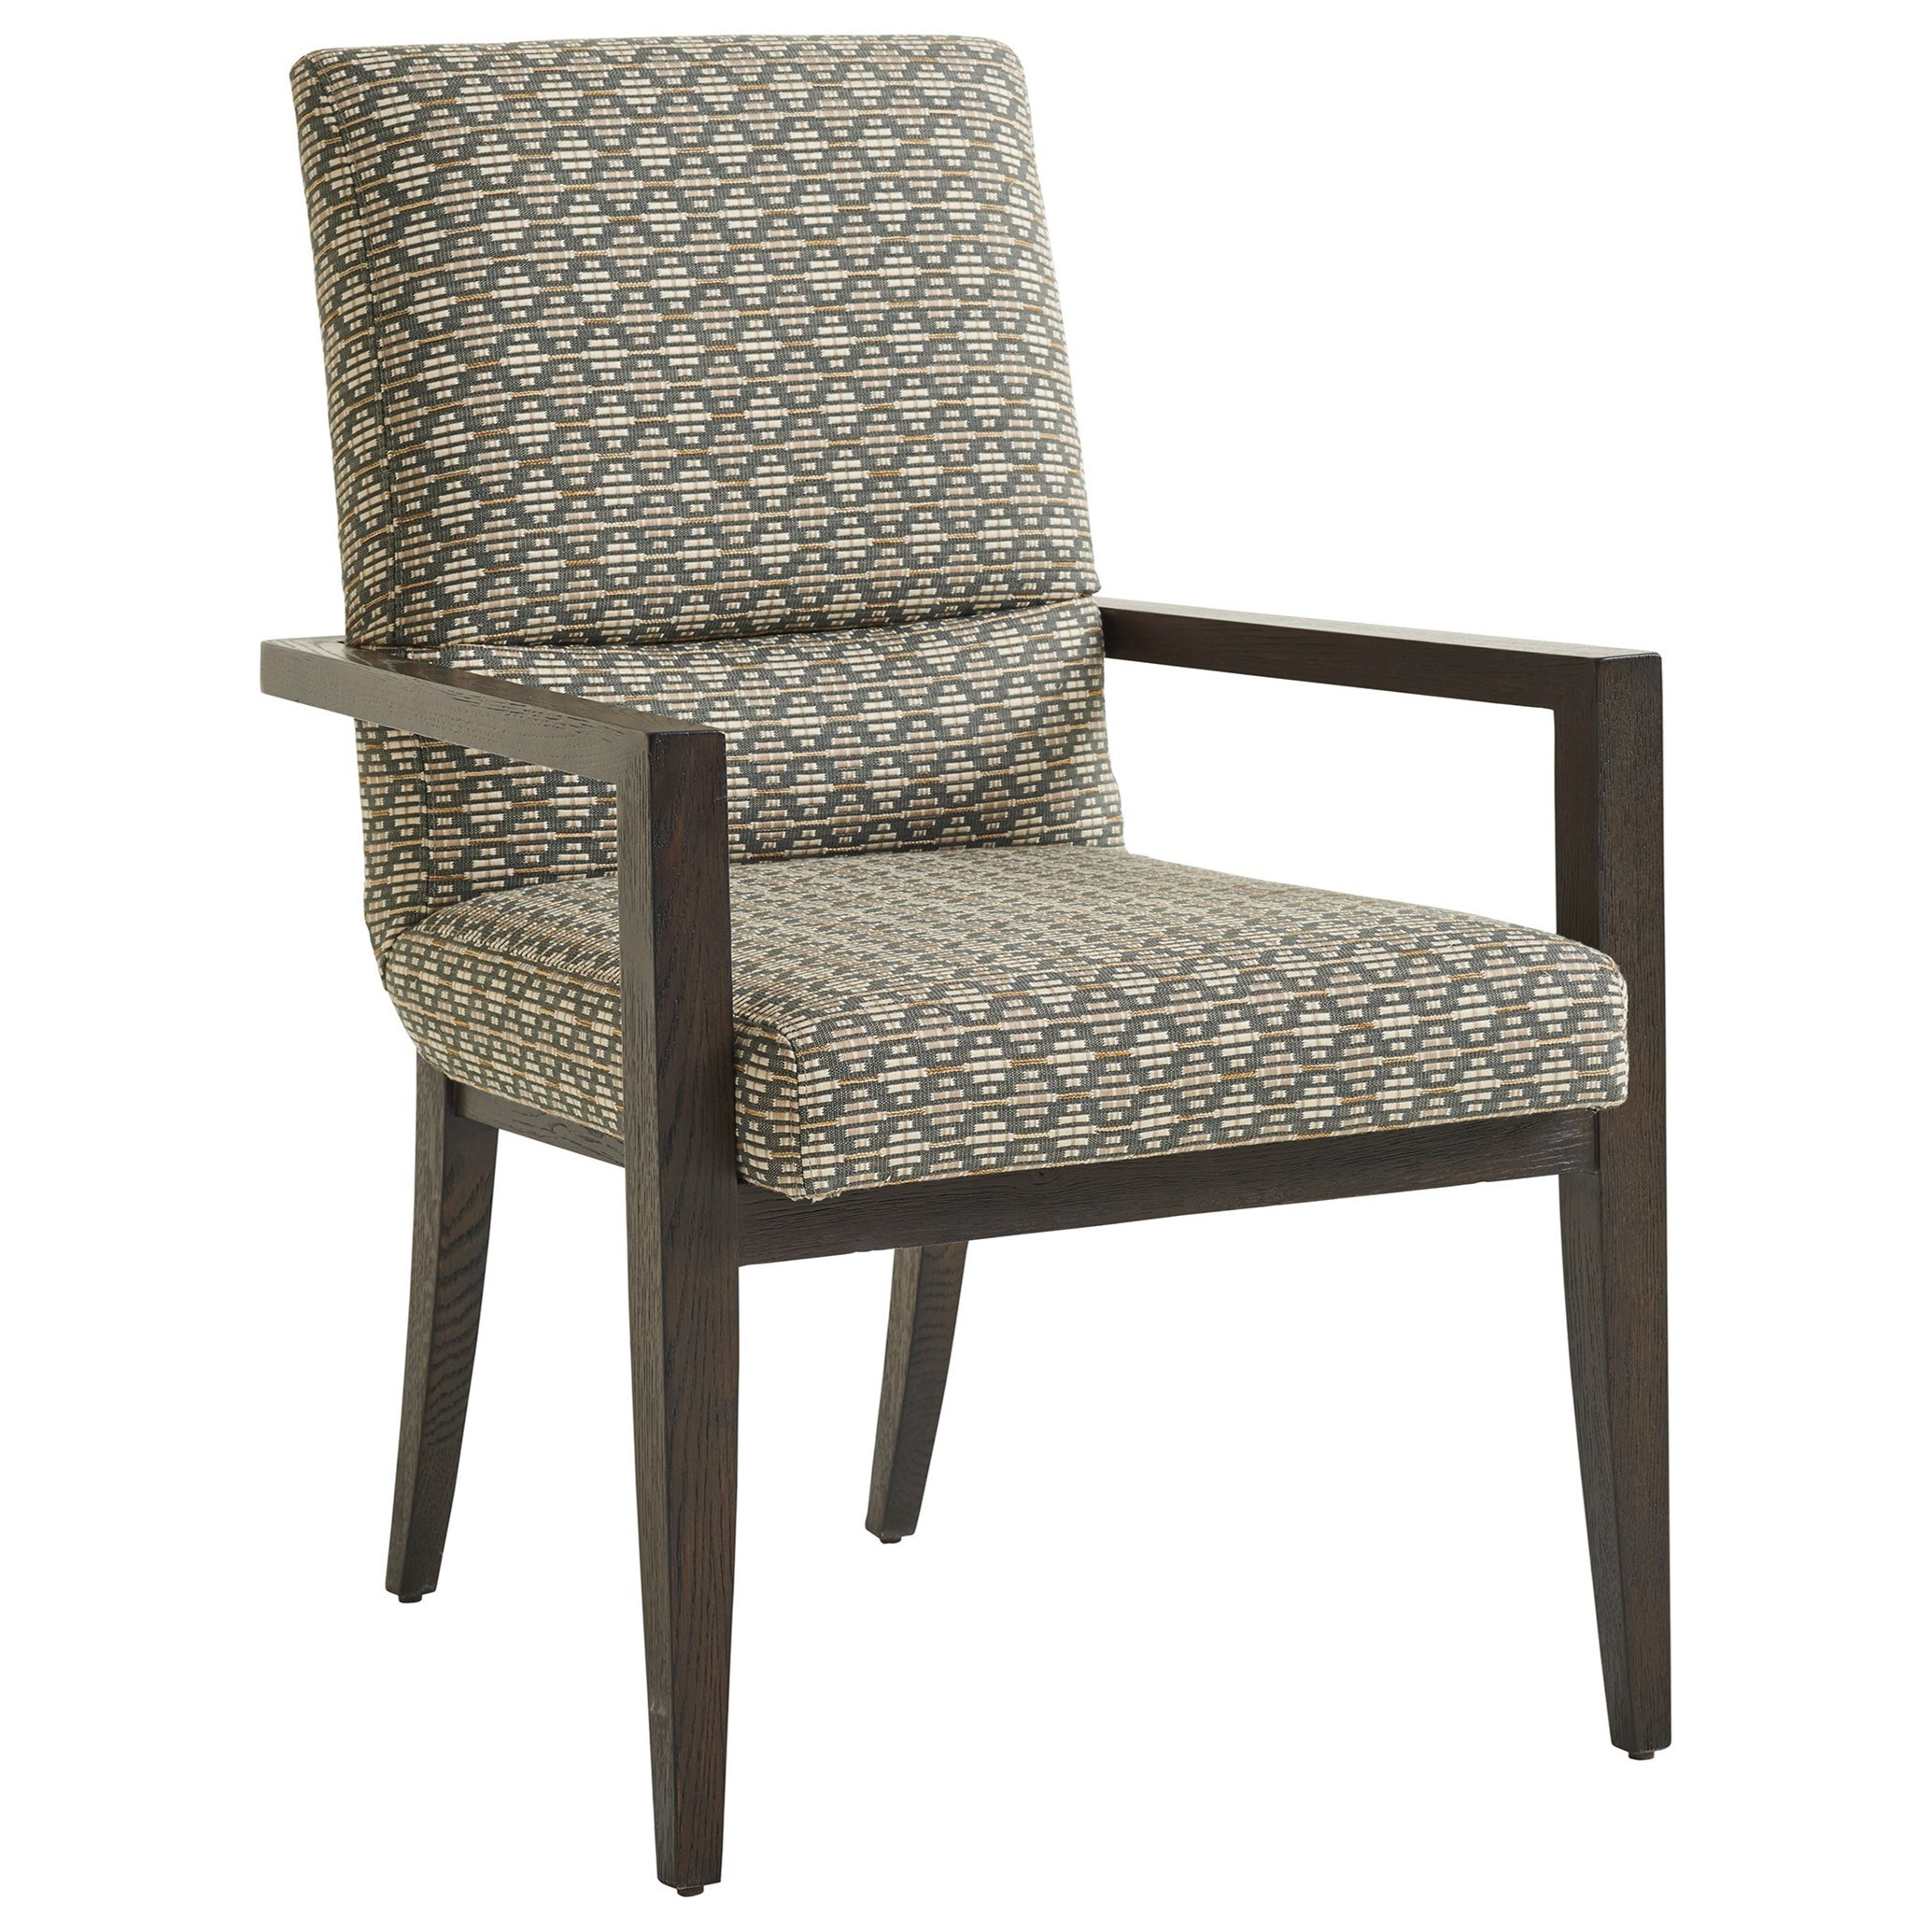 Park City Glenwild Customizable Upholstered Arm Chair by Barclay Butera at Baer's Furniture